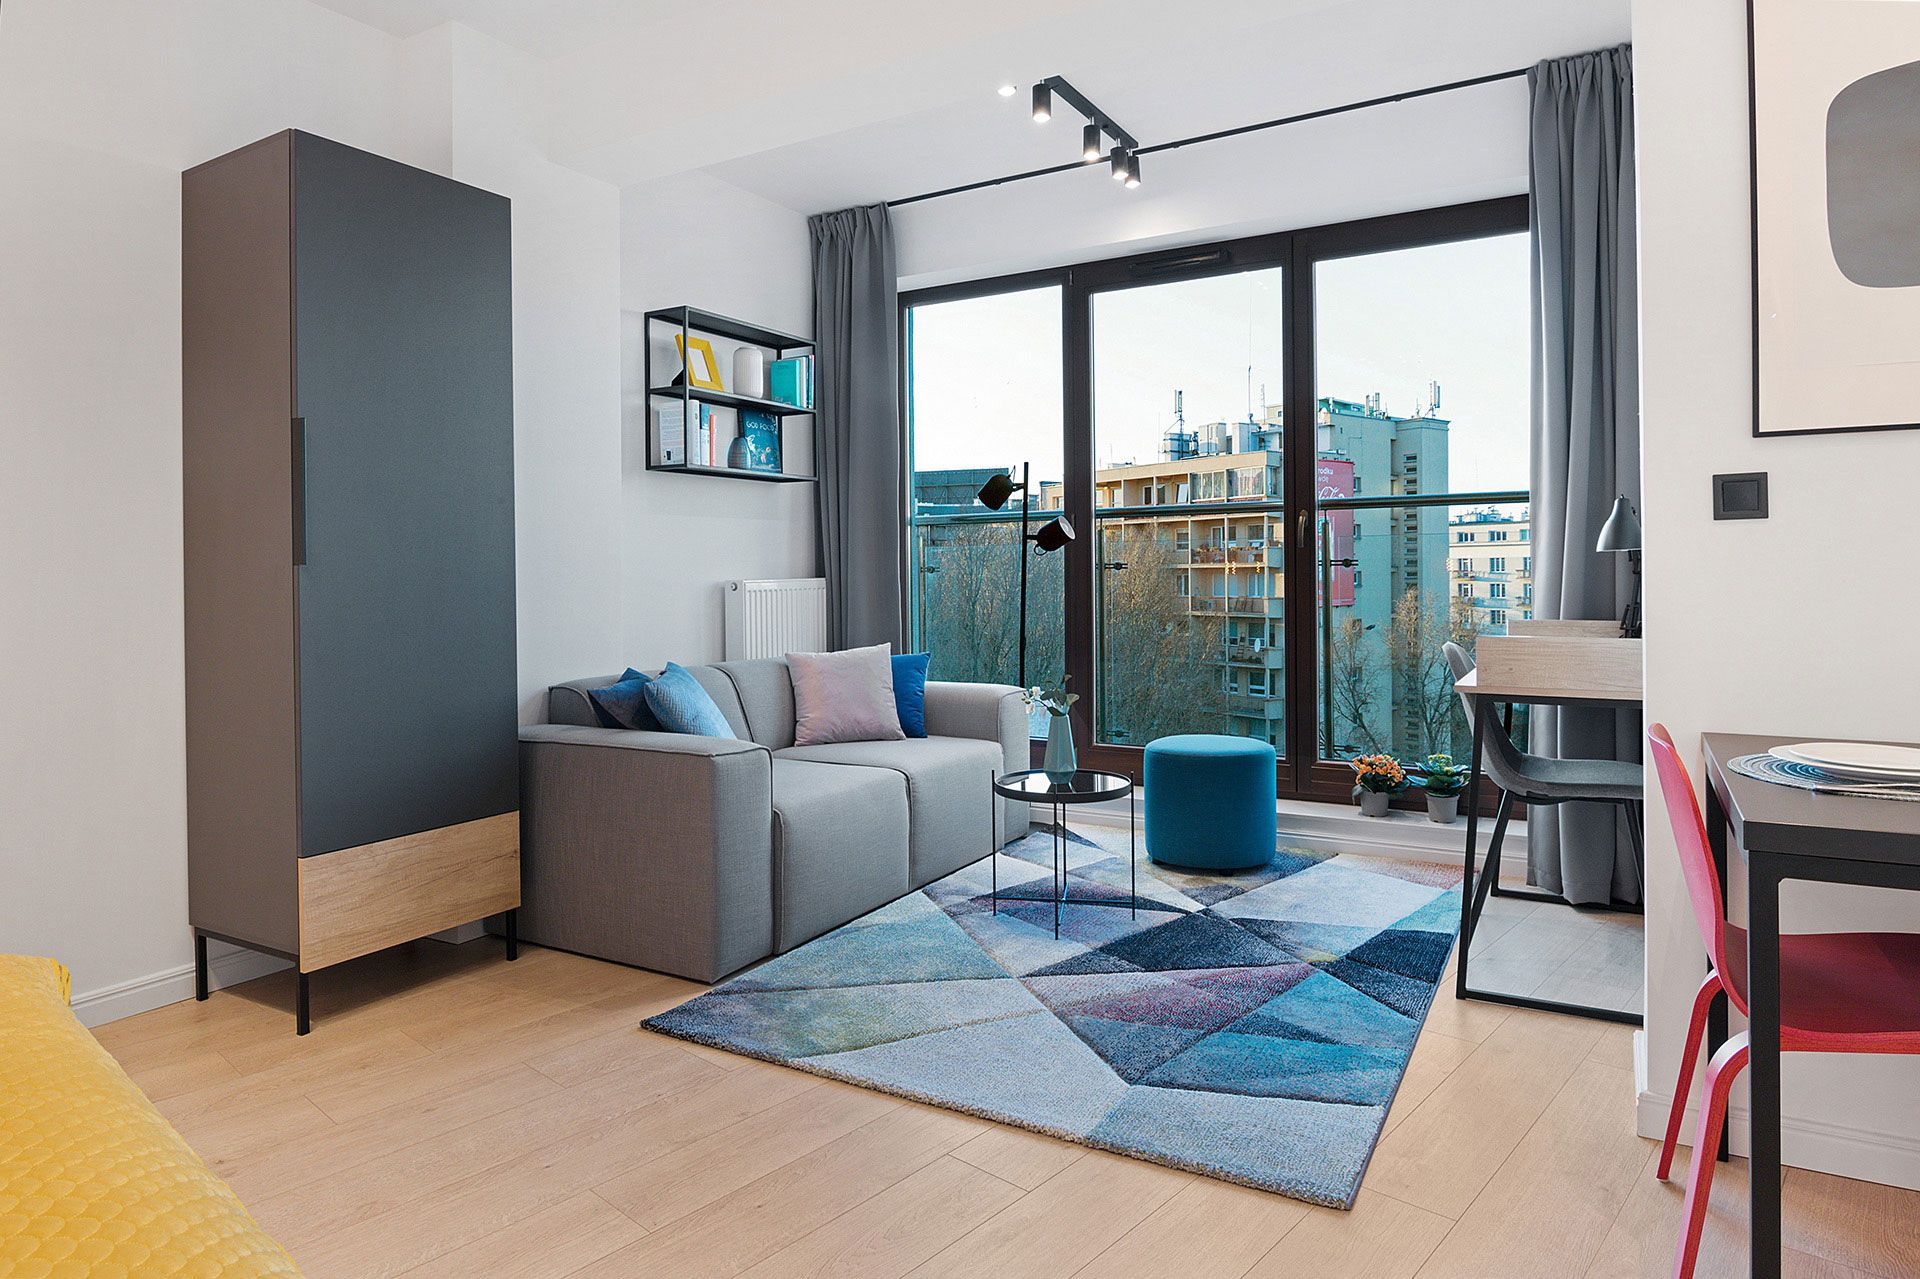 Studio - Medium apartment to rent in Warsaw UPR-A-046-1